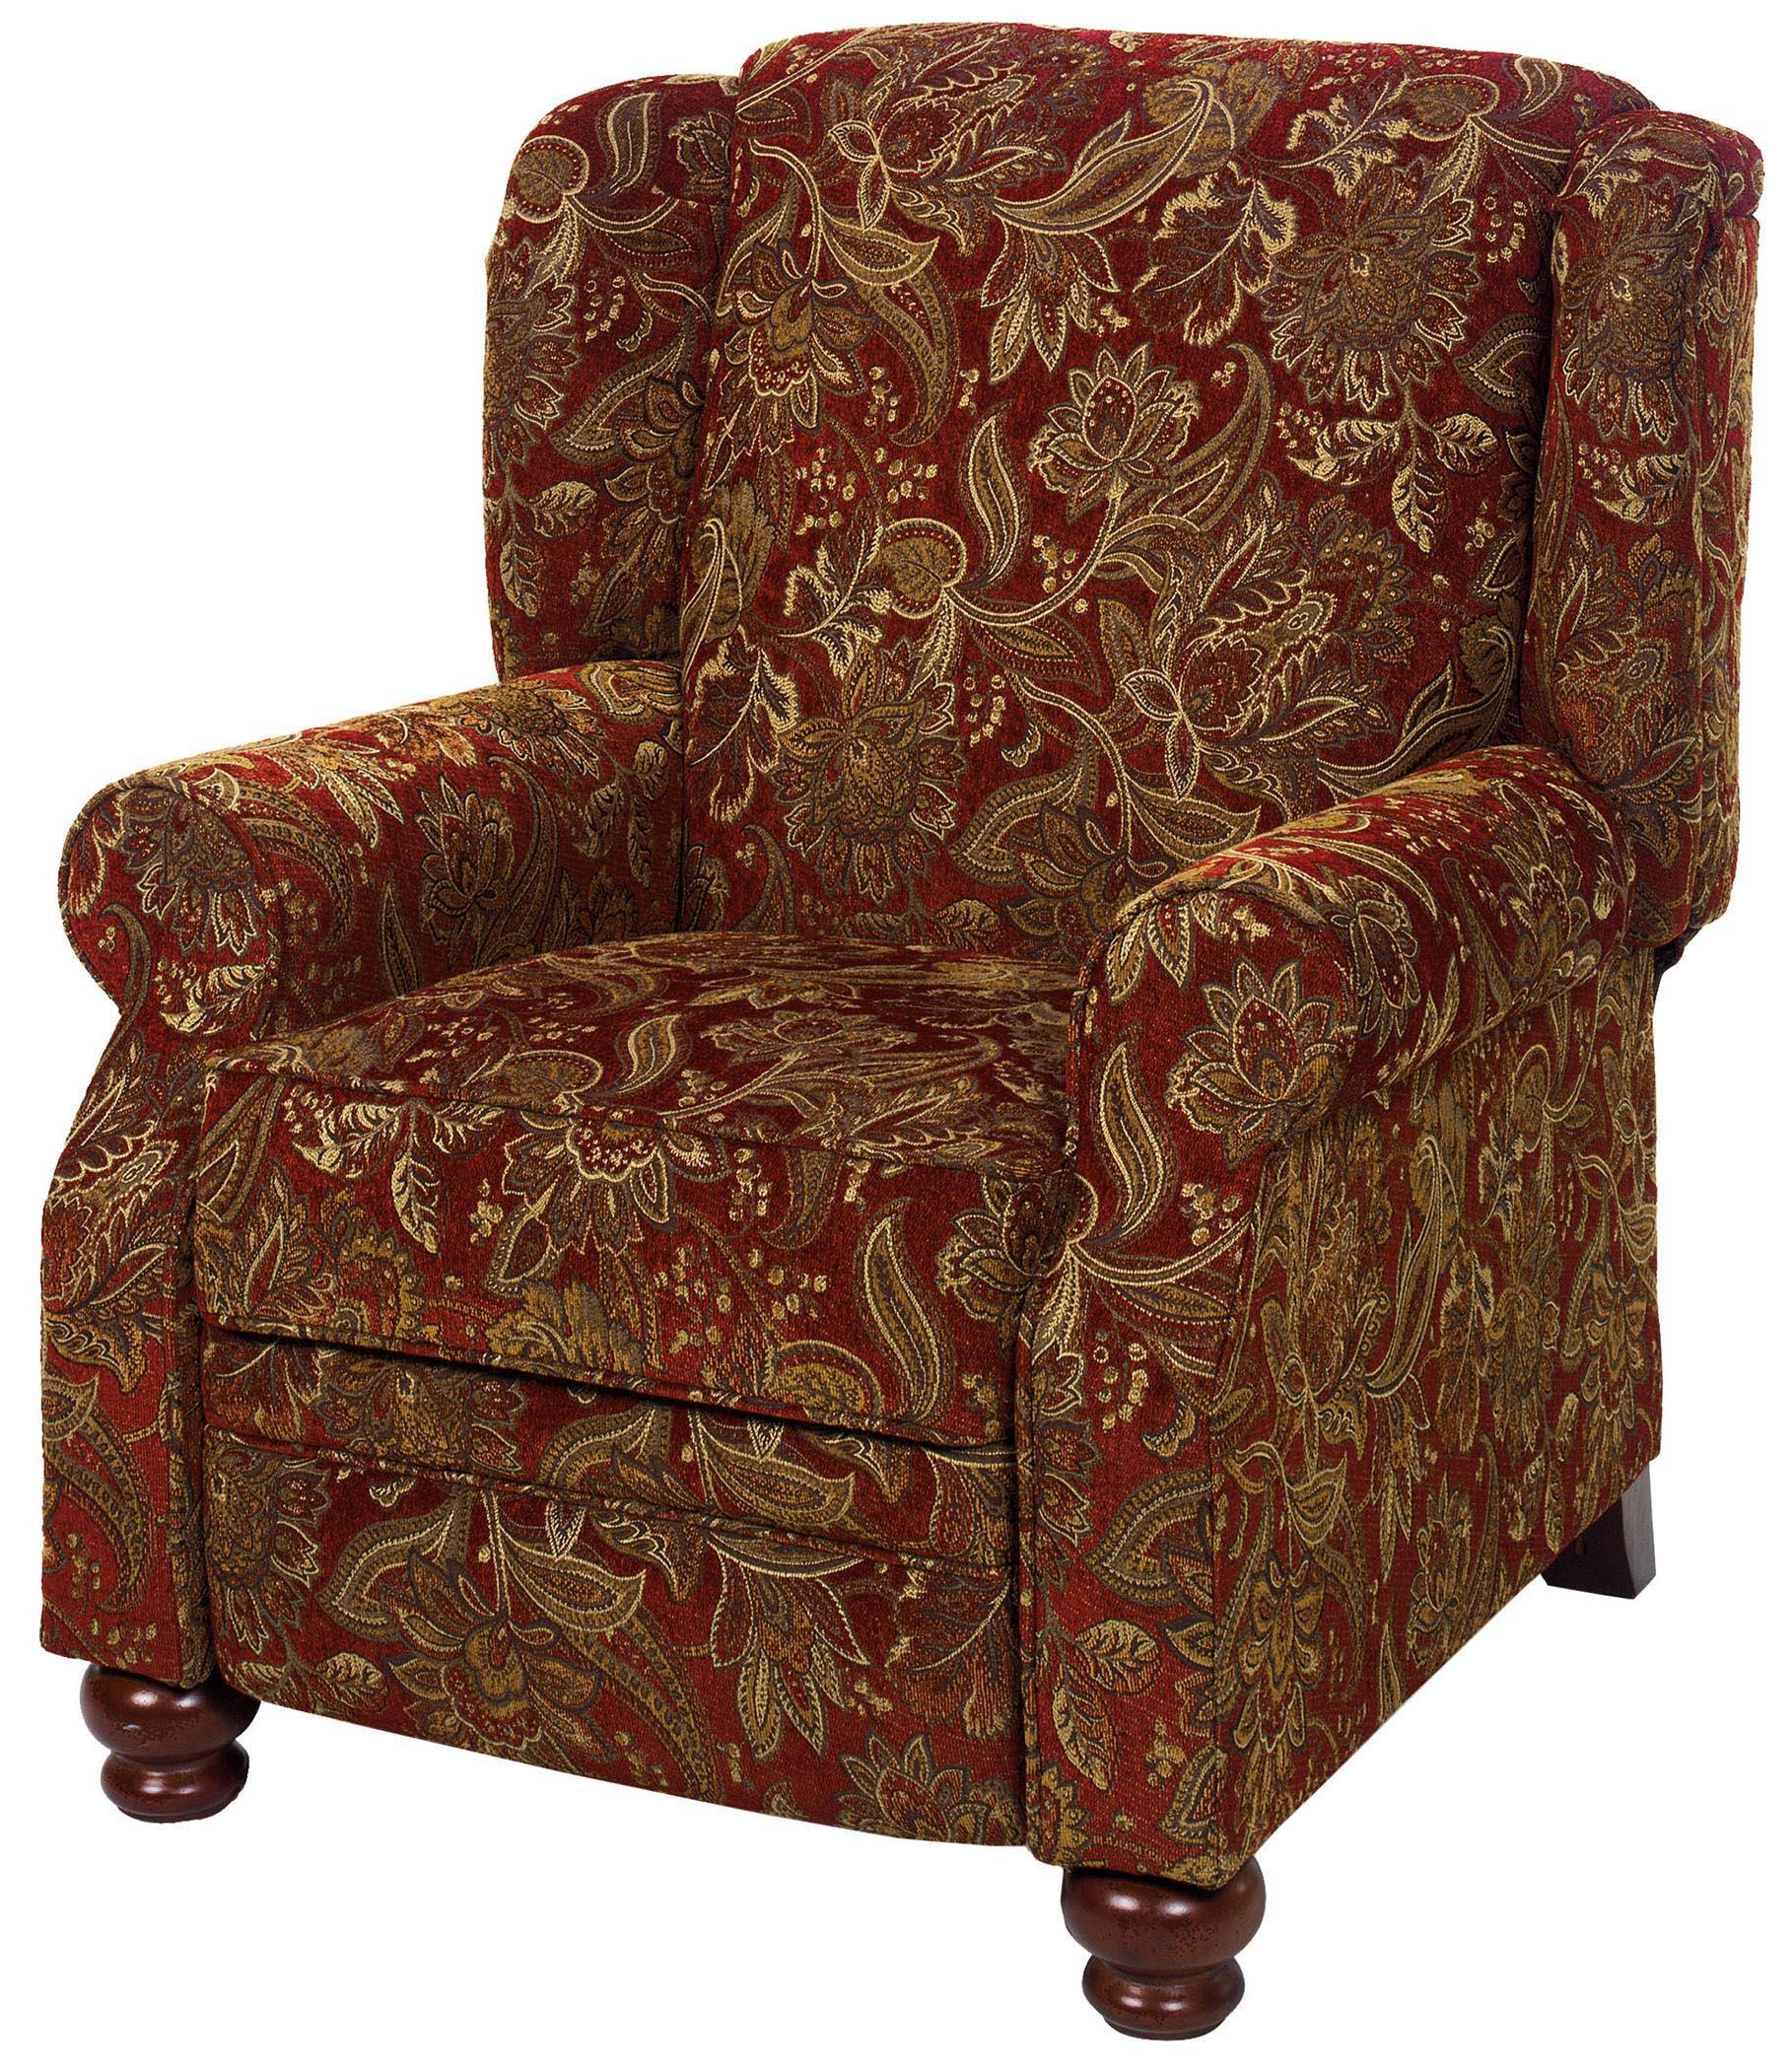 Awesome Pattern For High End Recliners  sc 1 st  HomesFeed & Awesome High End Recliners | HomesFeed